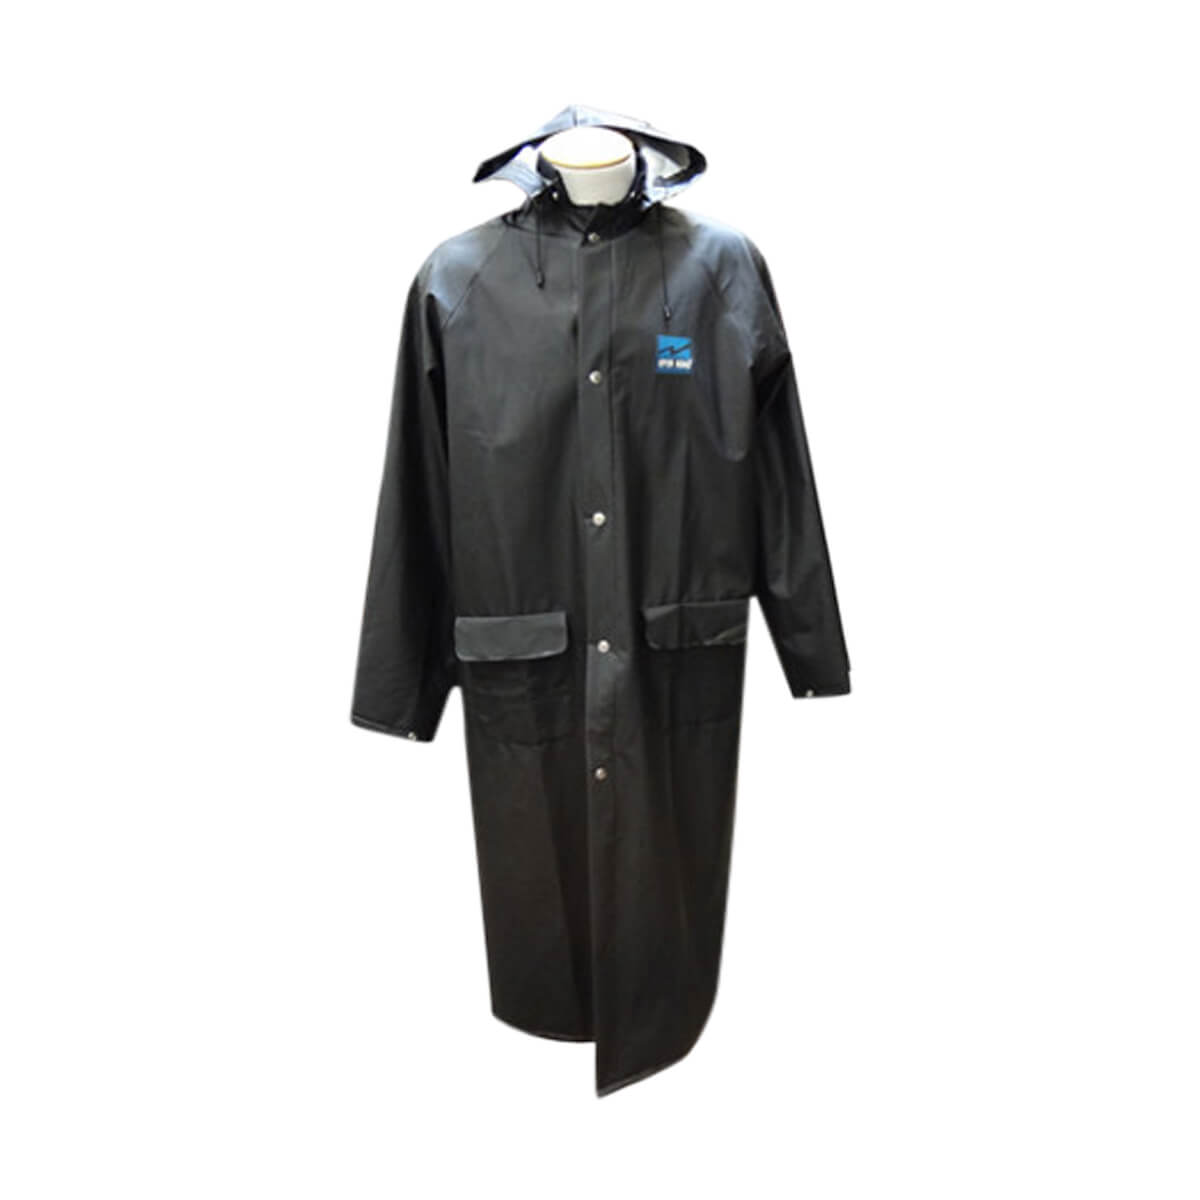 2pc Light Industrial Rainwear